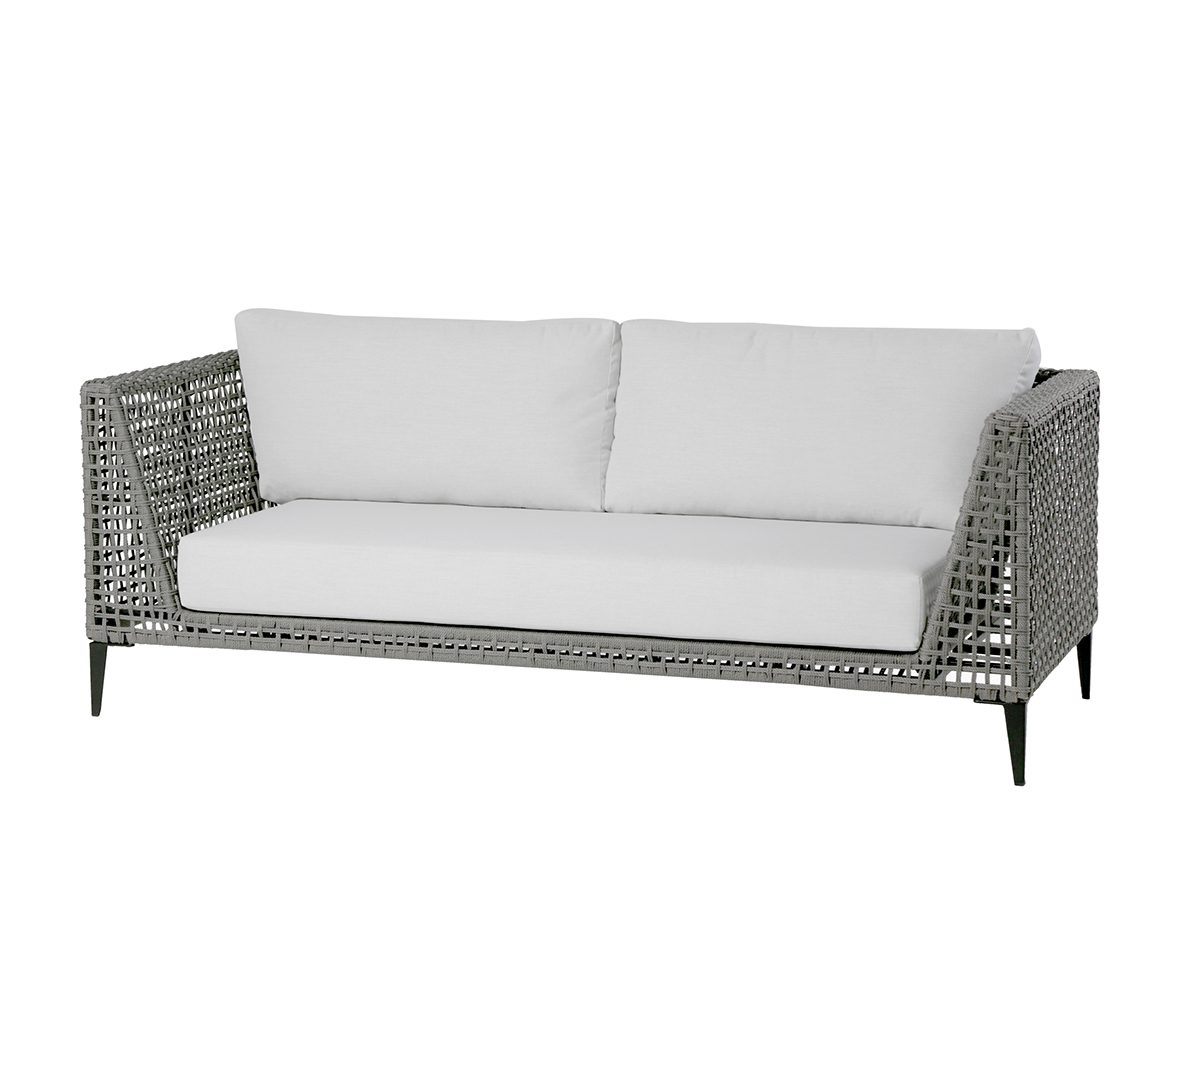 Genval 2.5 Seater Sofa | Patio Bay